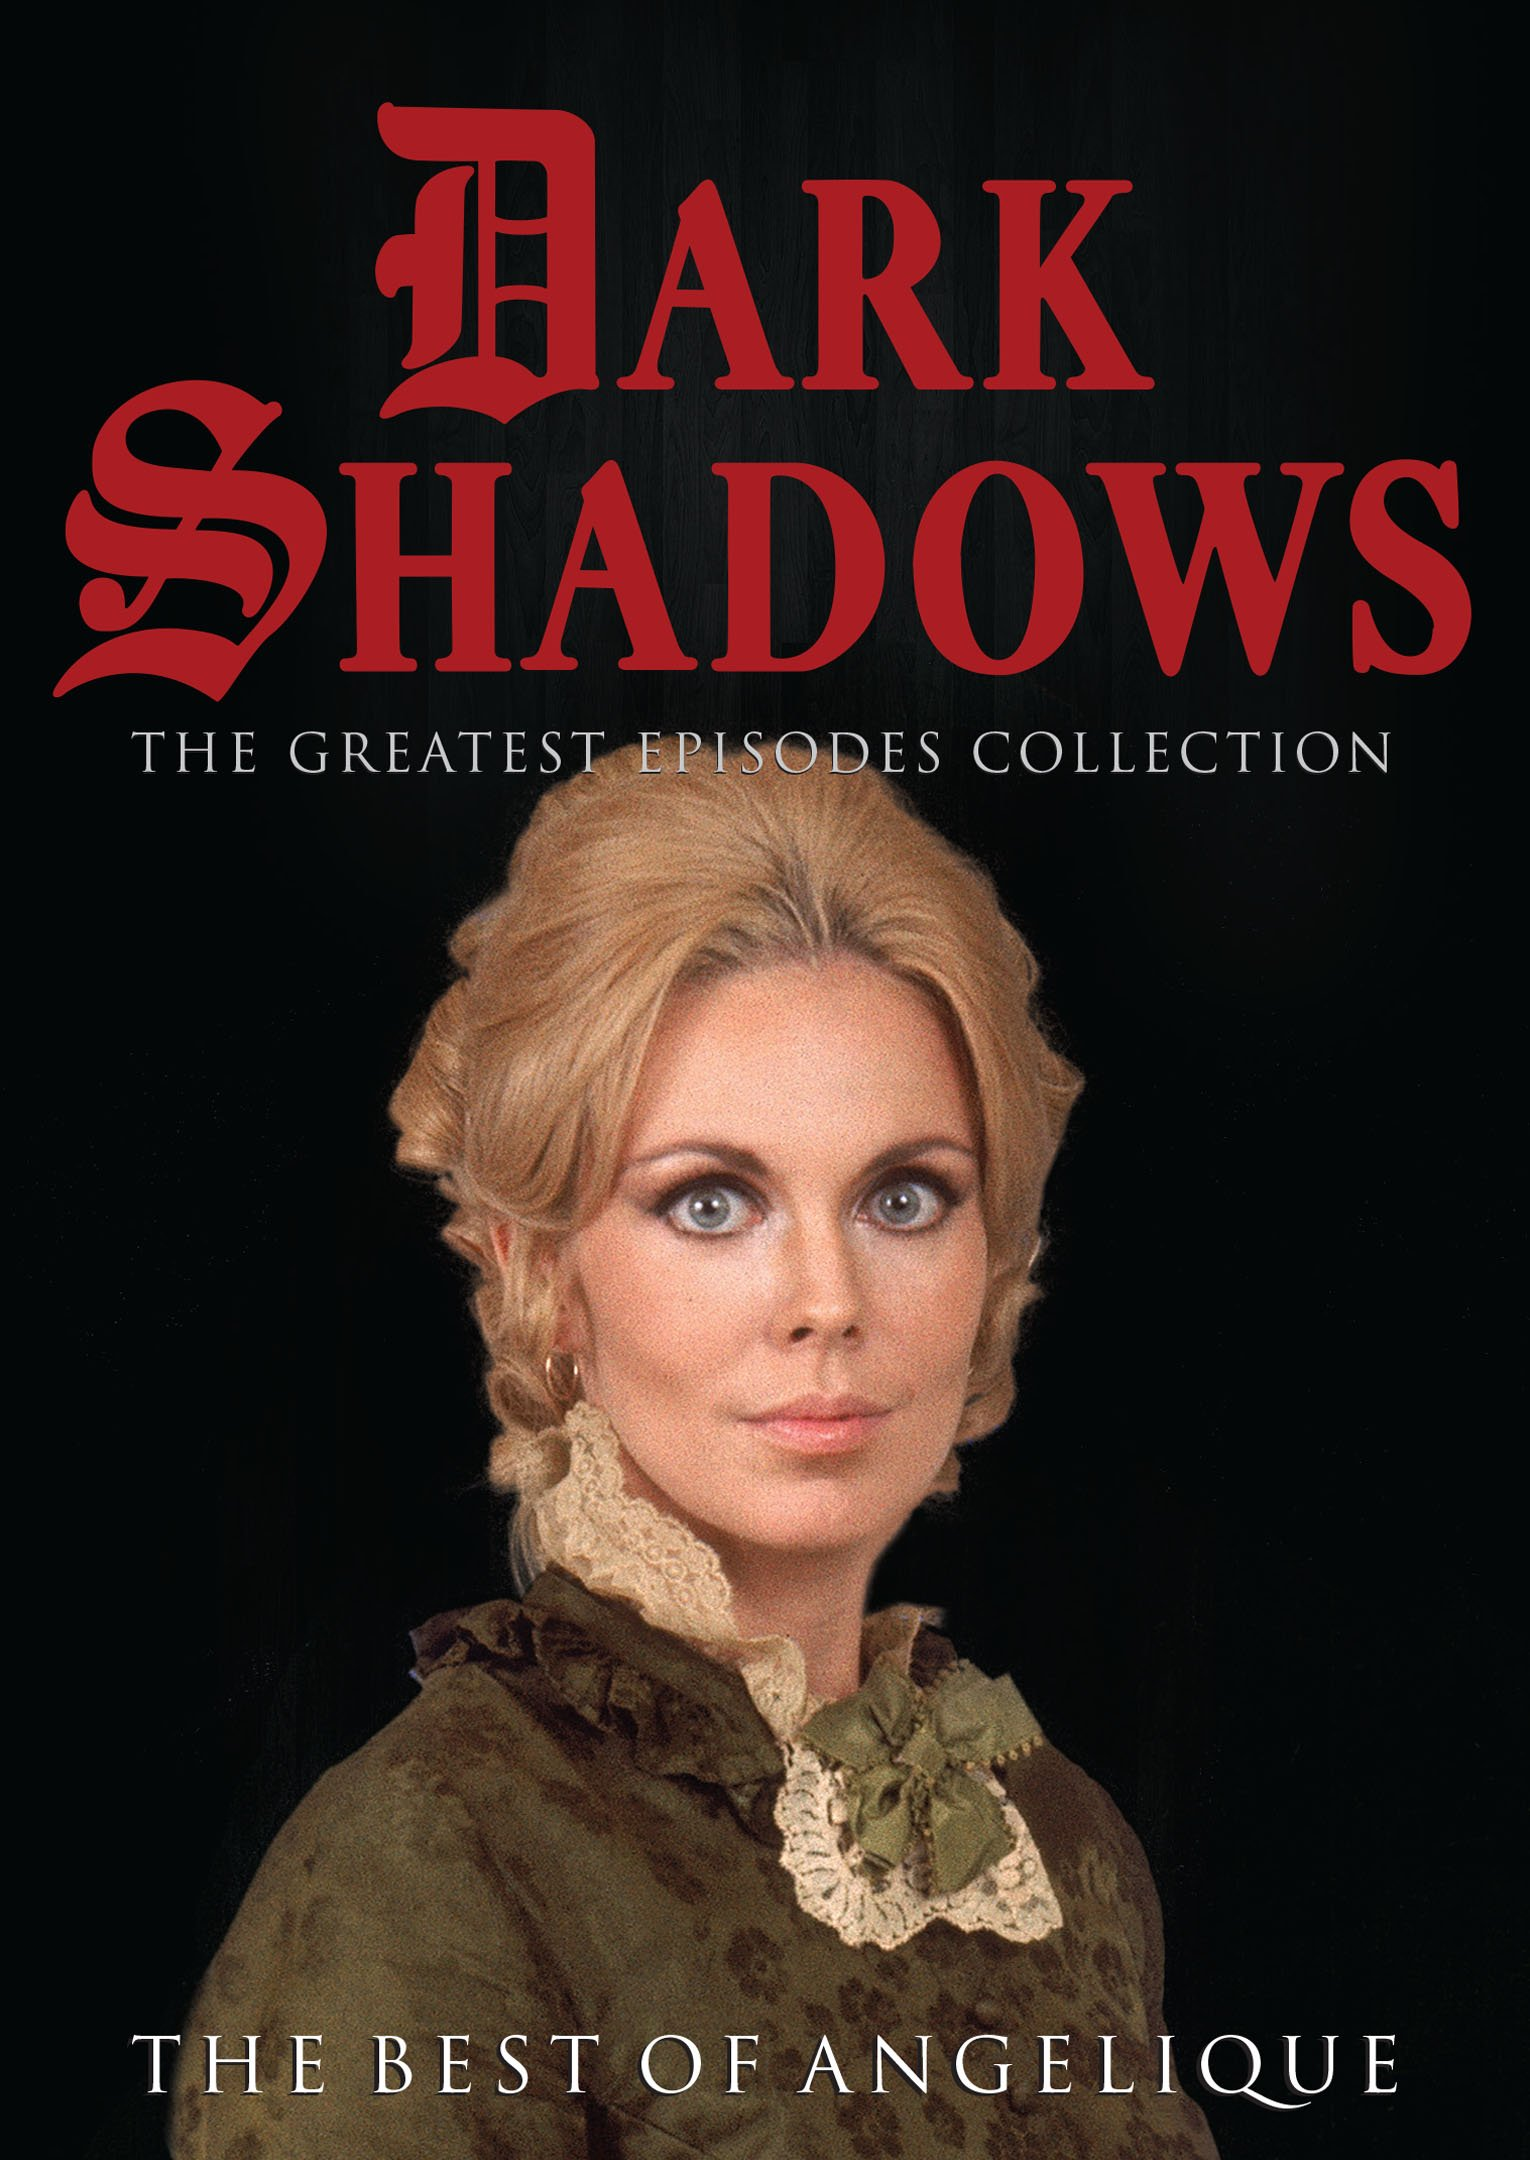 Dark Shadows: The Greatest Episodes Collection: The Best of Angelique (DVD)